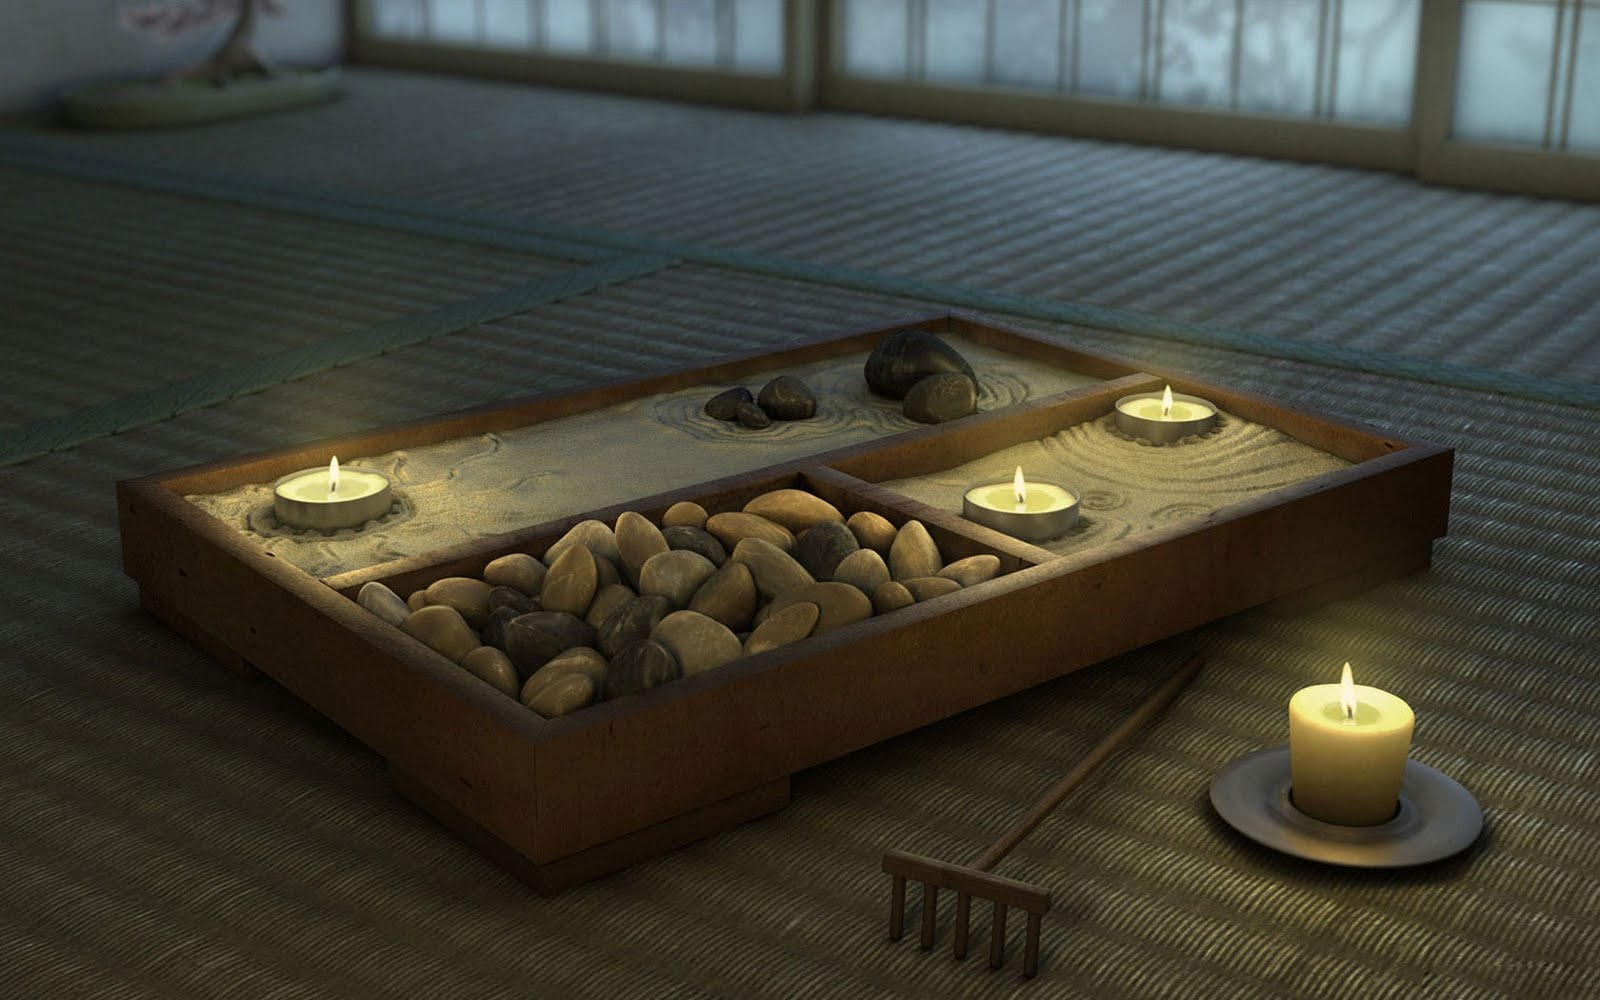 Top 5 best desktop zen gardens list my zen decor for Jardin zen miniature